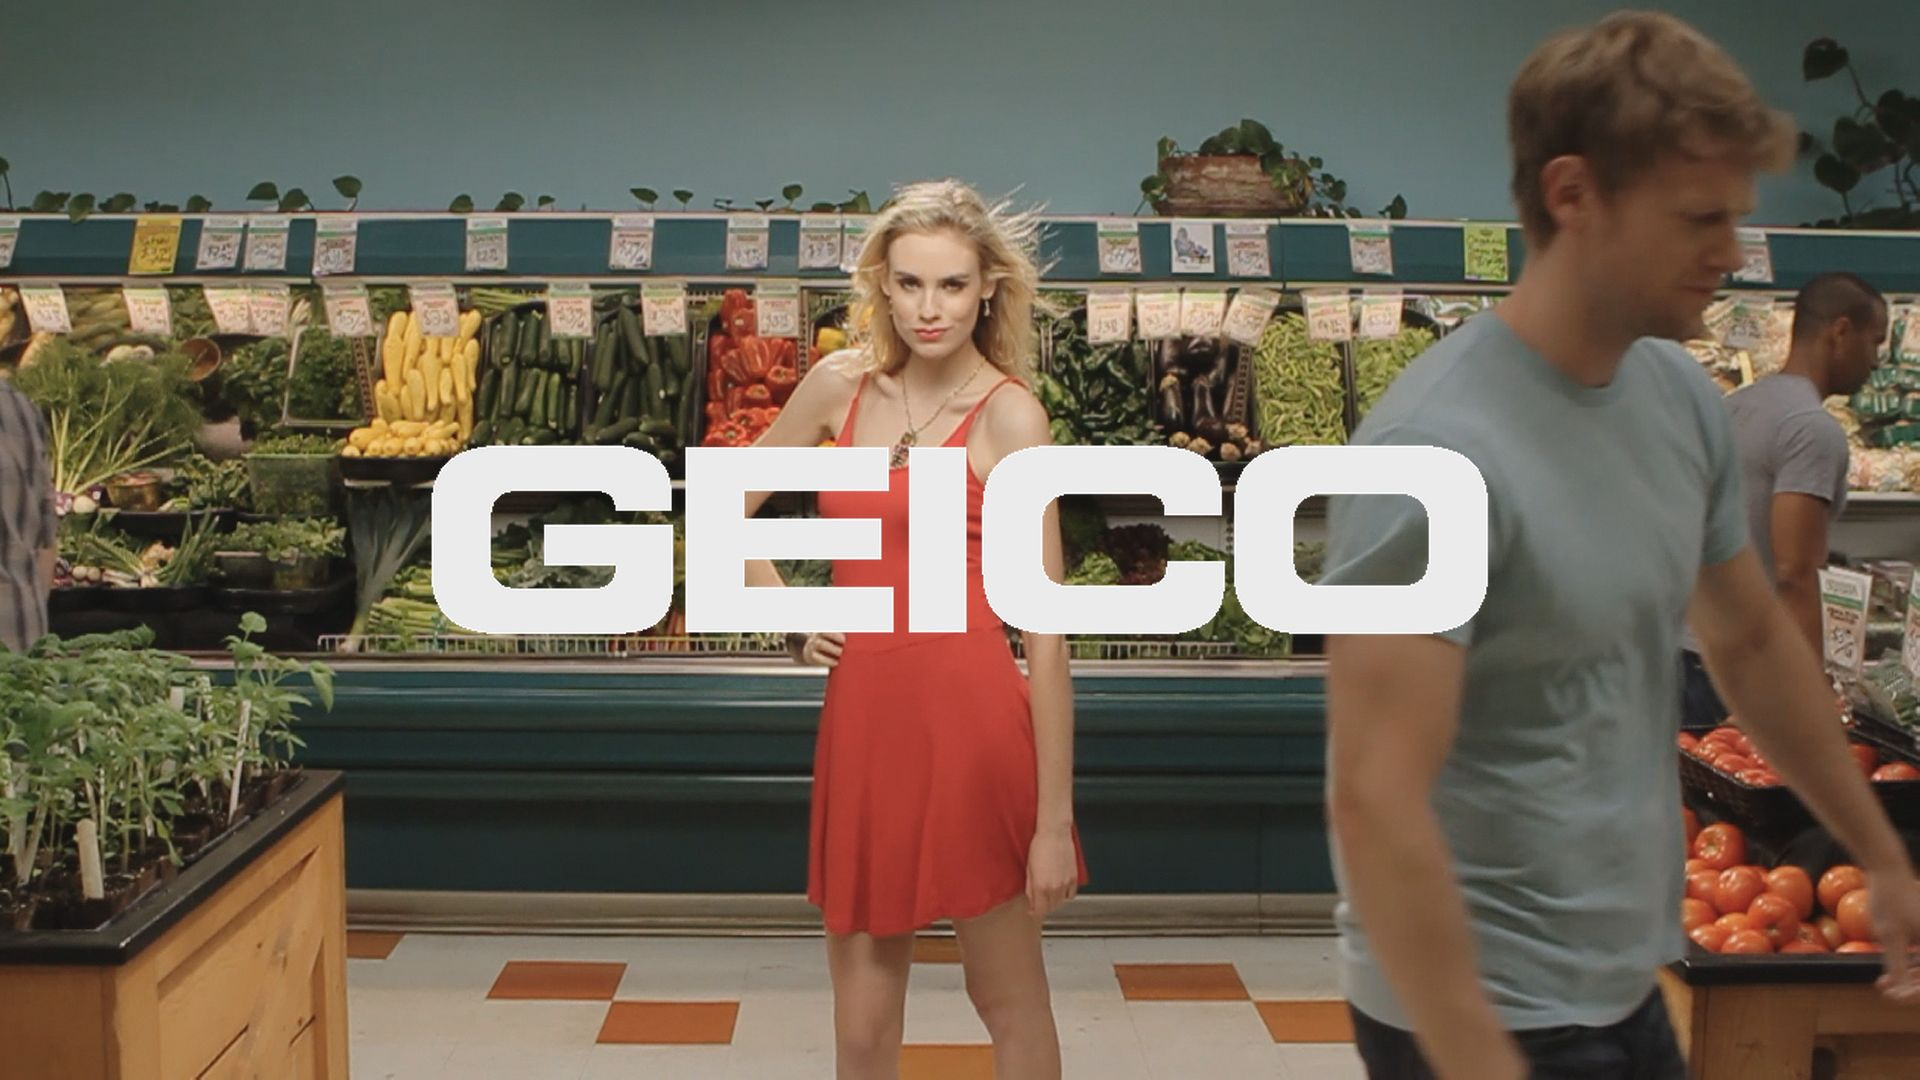 [adult swim] 'Geico' Branded TV Spot